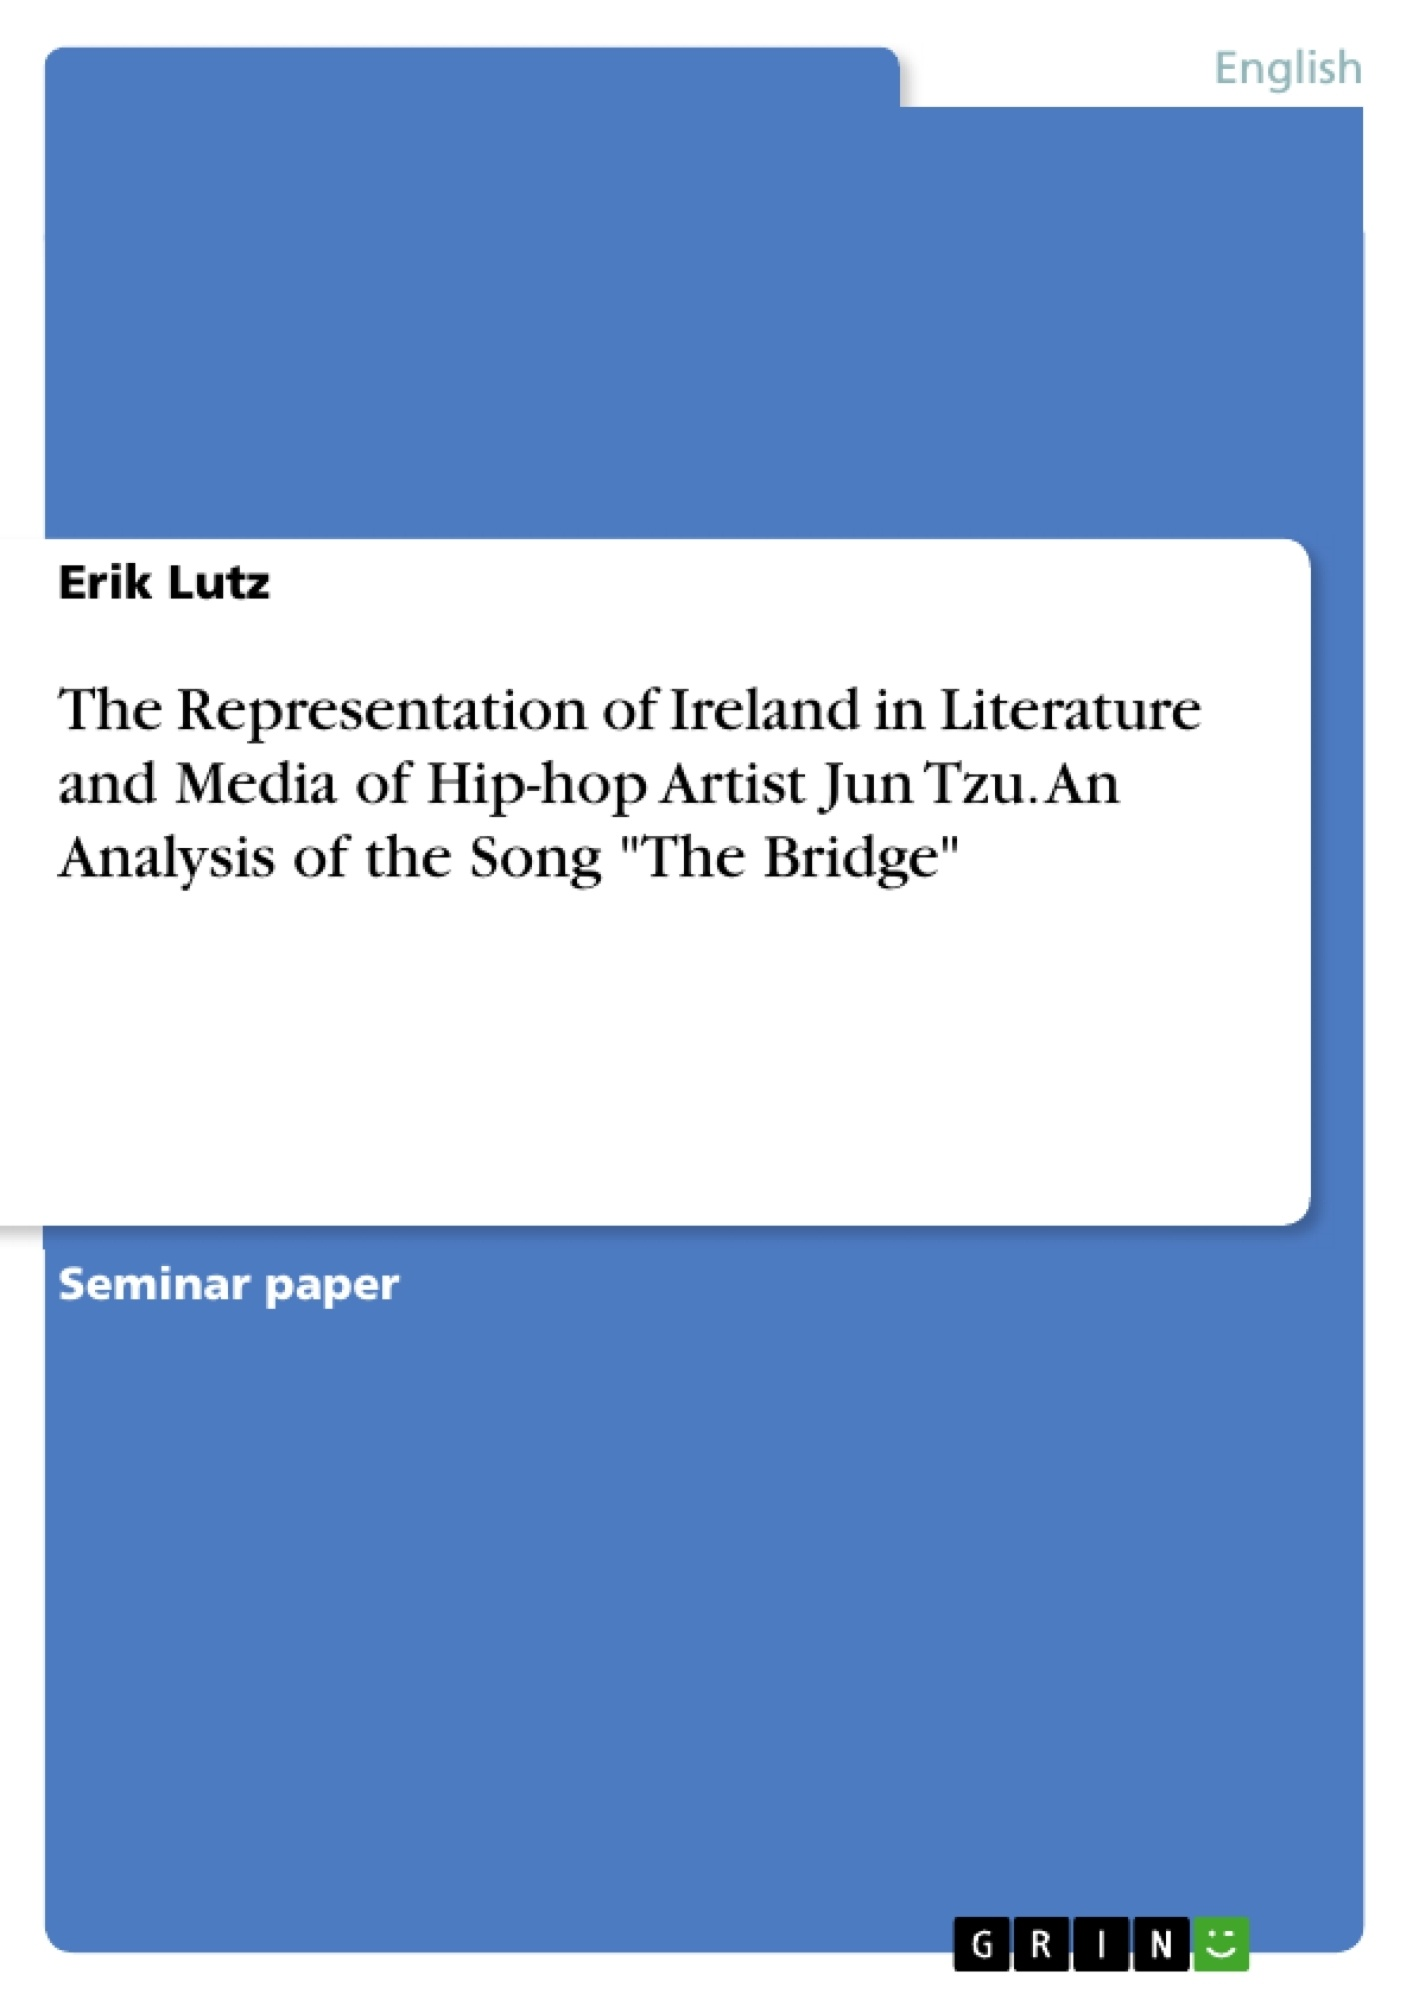 """Title: The Representation of Ireland in Literature and Media of Hip-hop Artist Jun Tzu. An Analysis of the Song """"The Bridge"""""""